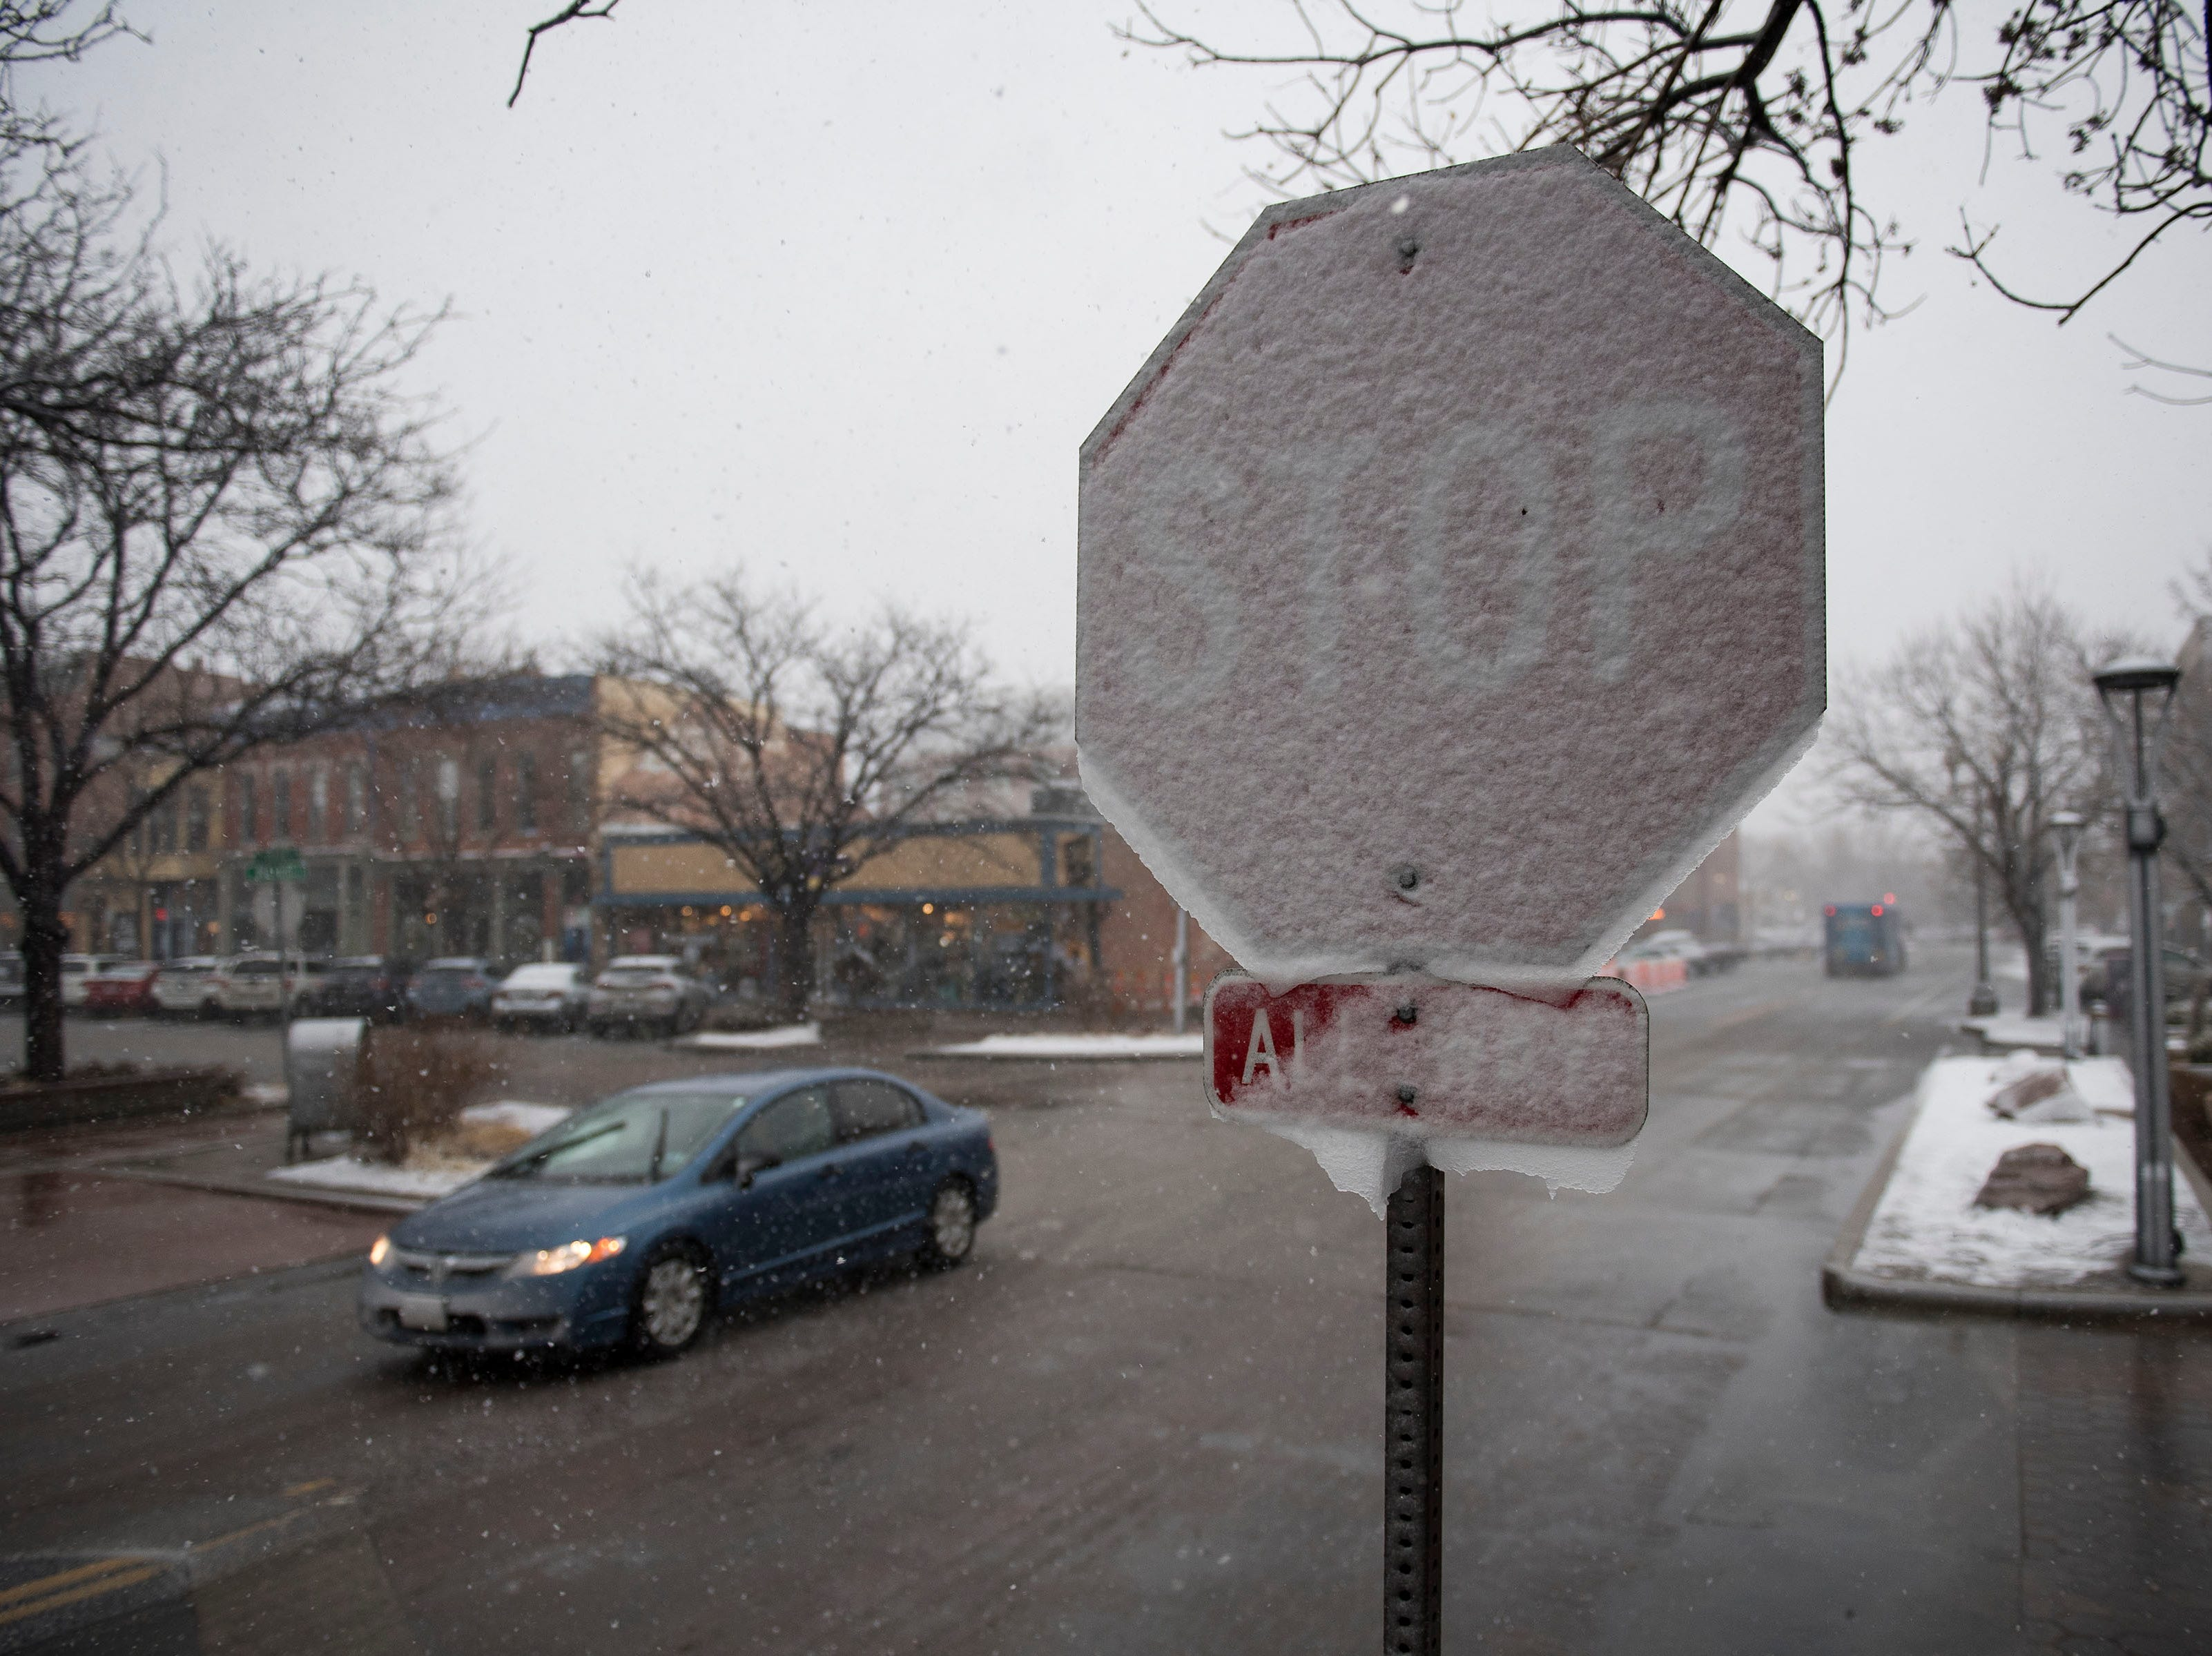 Snow sticks to a West-facing stop sign in Old Town on Wednesday, March 13, 2019, in Fort Collins, Colo.